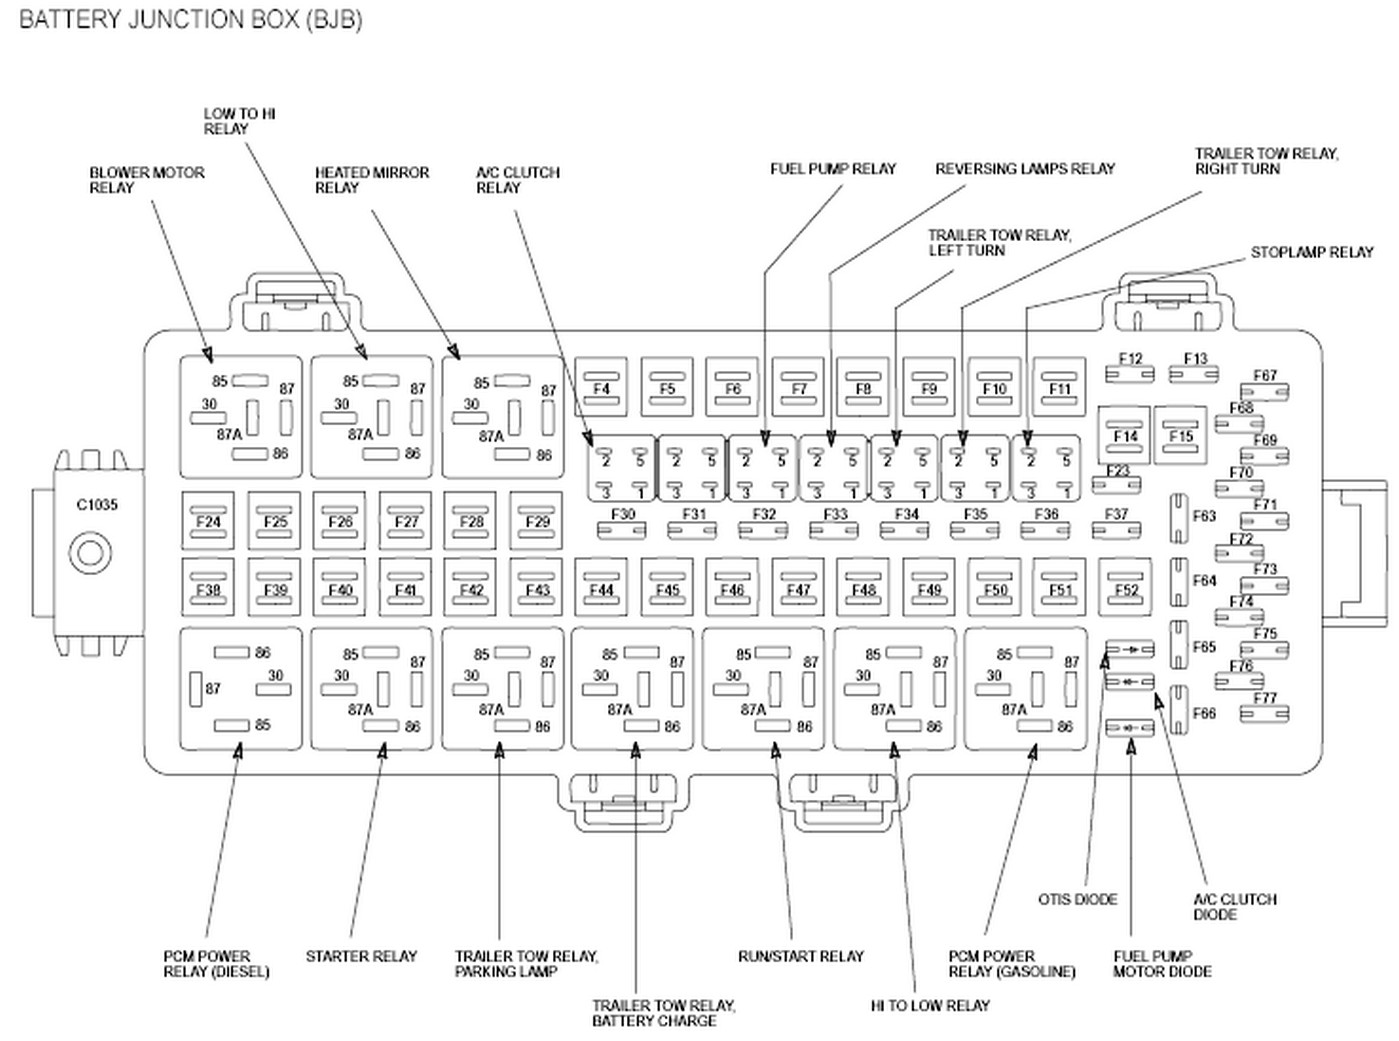 2011 ford f250 fuse box diagram Zoinyhu 2012 f250 fuse box location 2009 ford fusion fuse box diagram 1997 ford f250 fuse box diagram at suagrazia.org